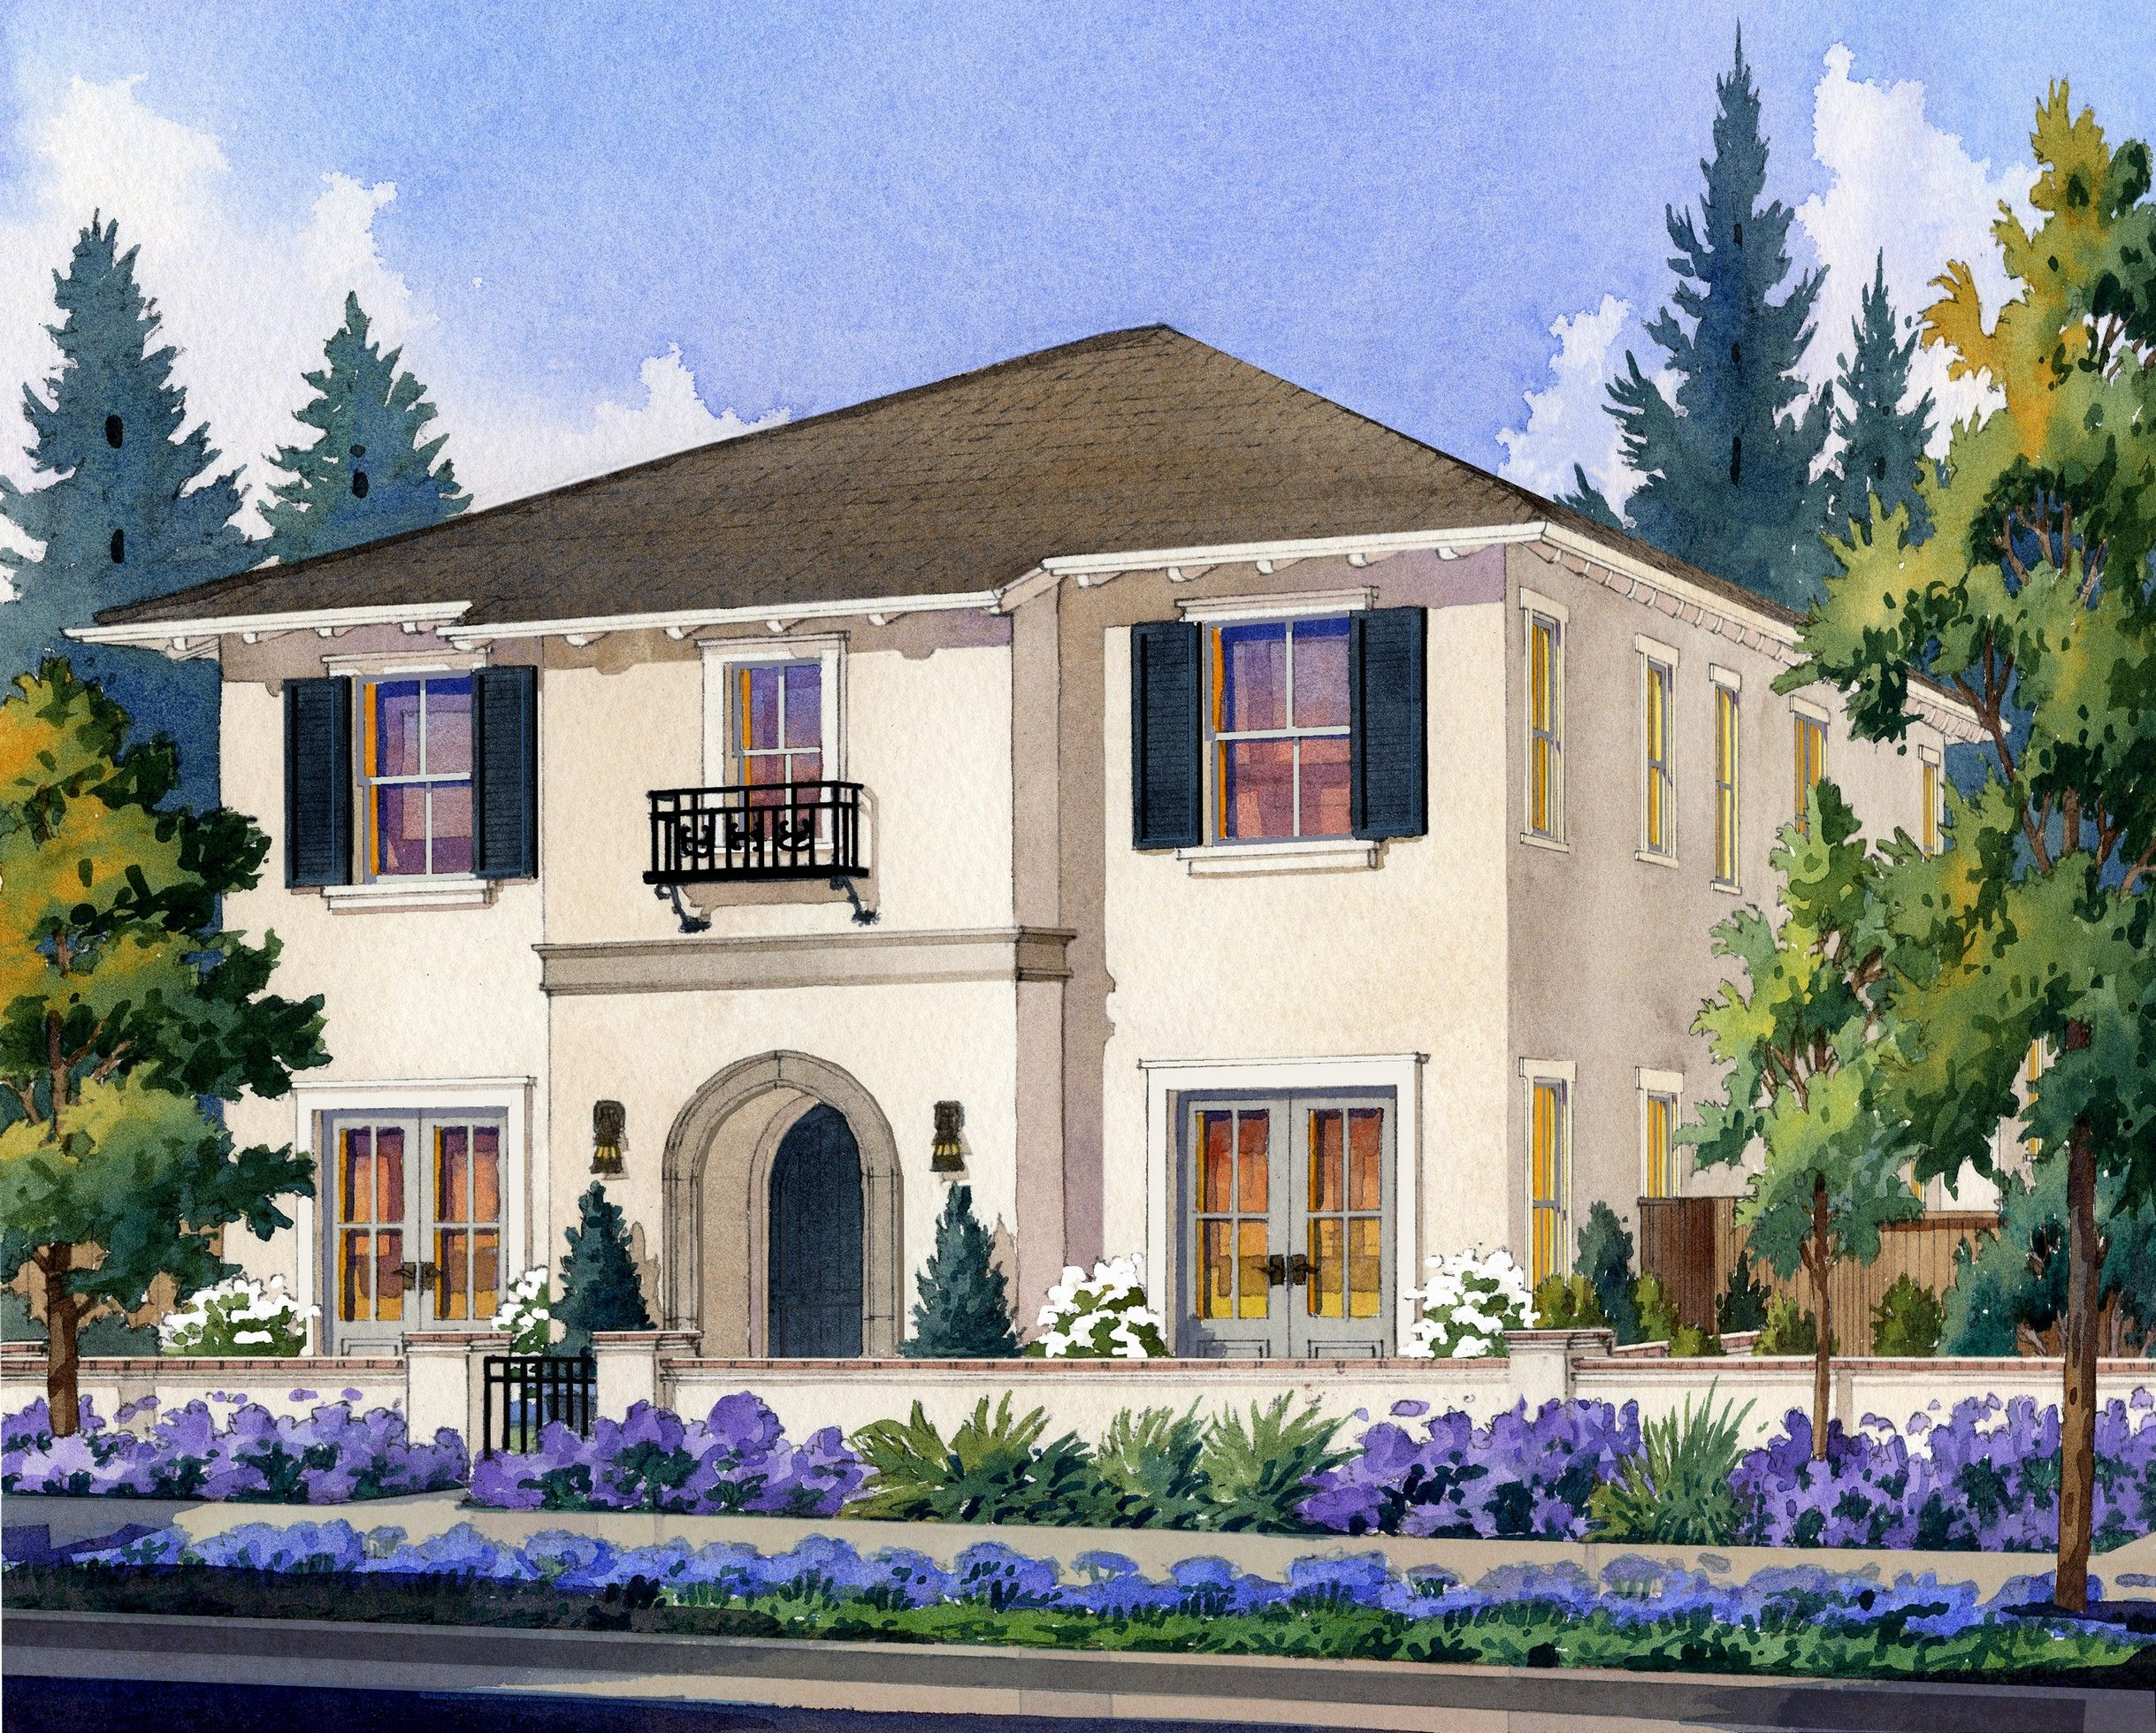 'Finch Hollow' by Robson Homes in San Jose